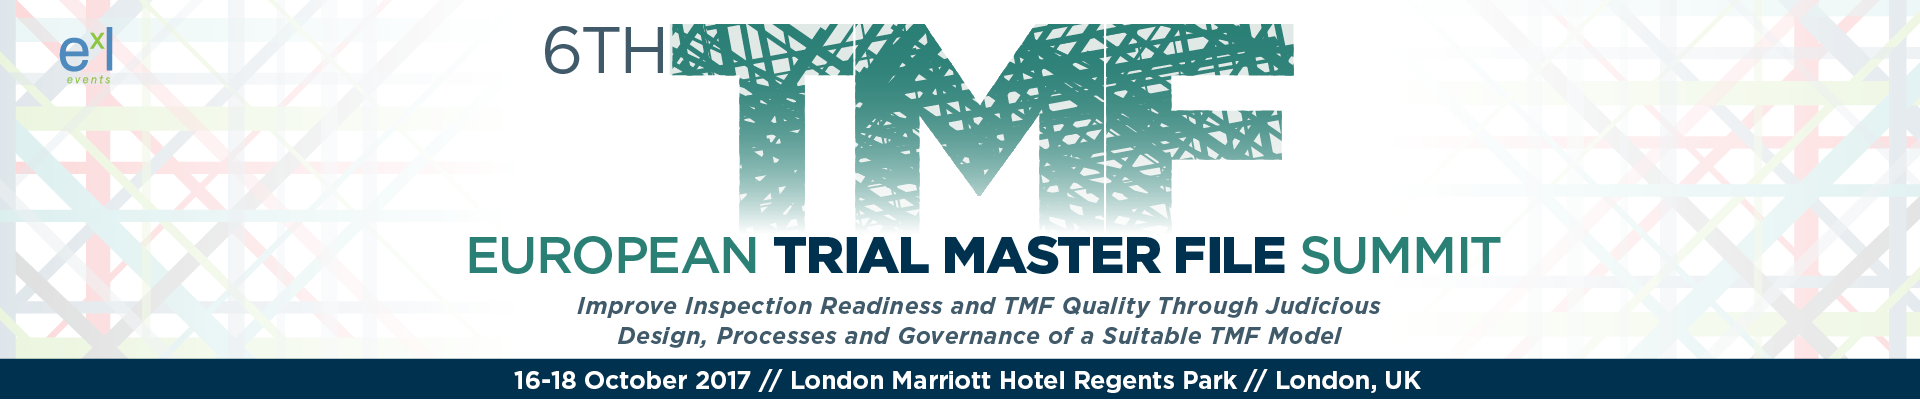 6th European Trial Master File Summit